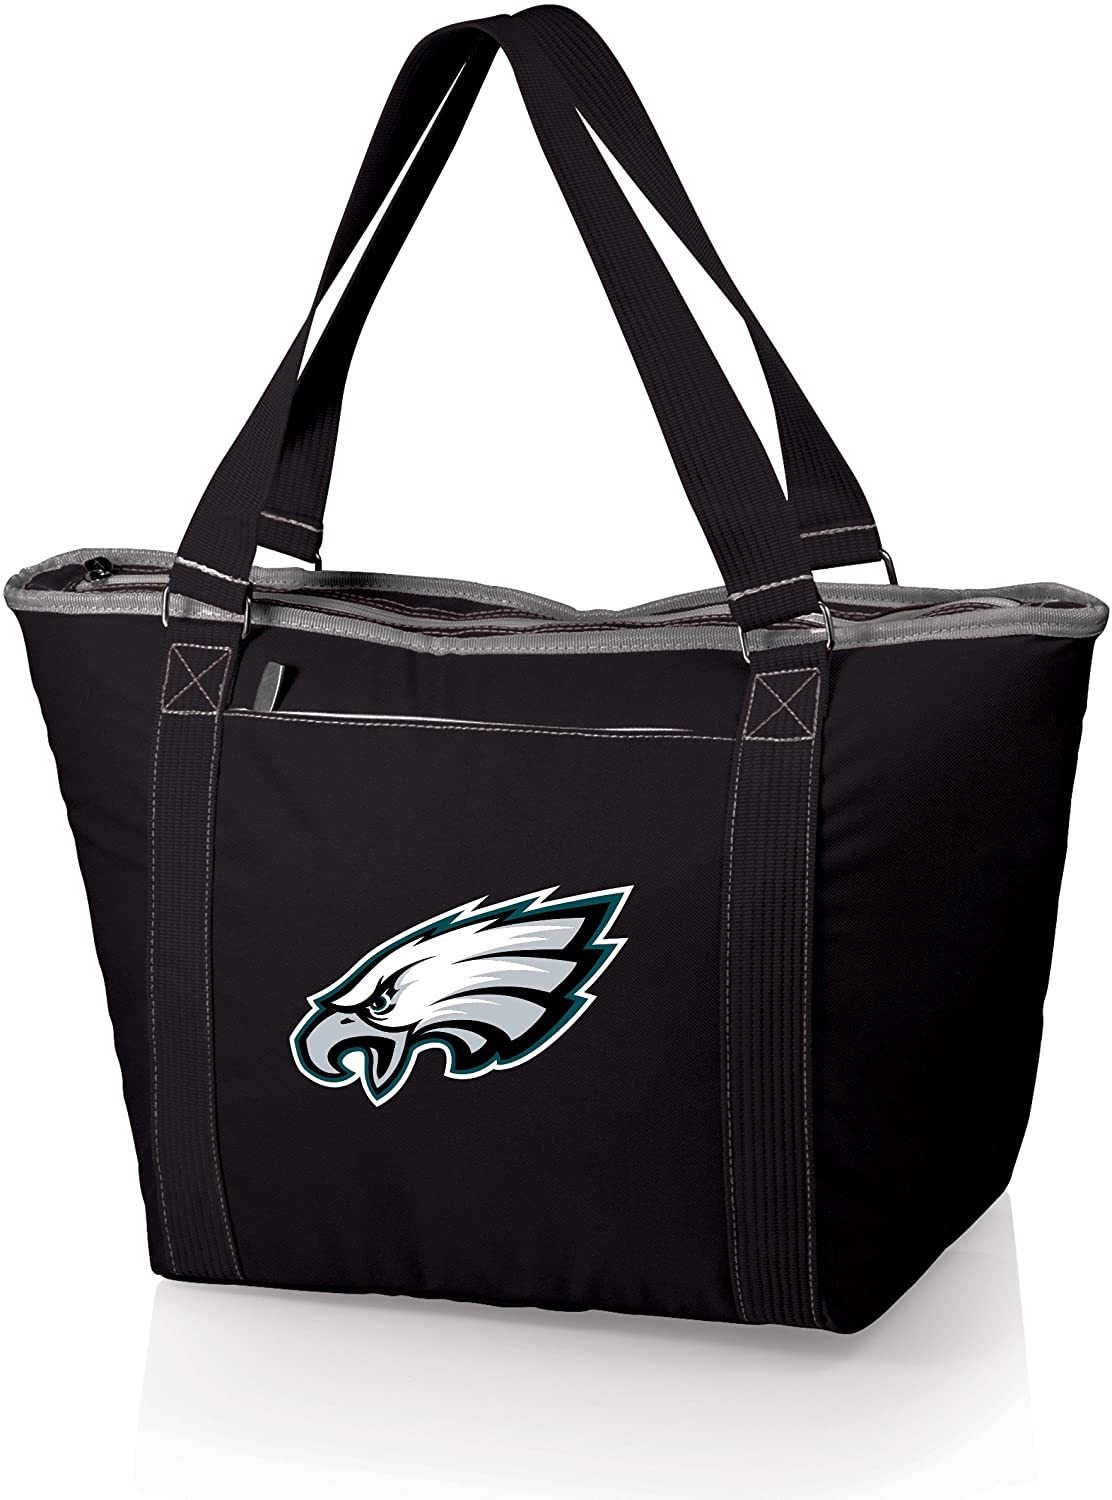 NFL Philadelphia Eagles Topanga Insulated Cooler Tote, Black